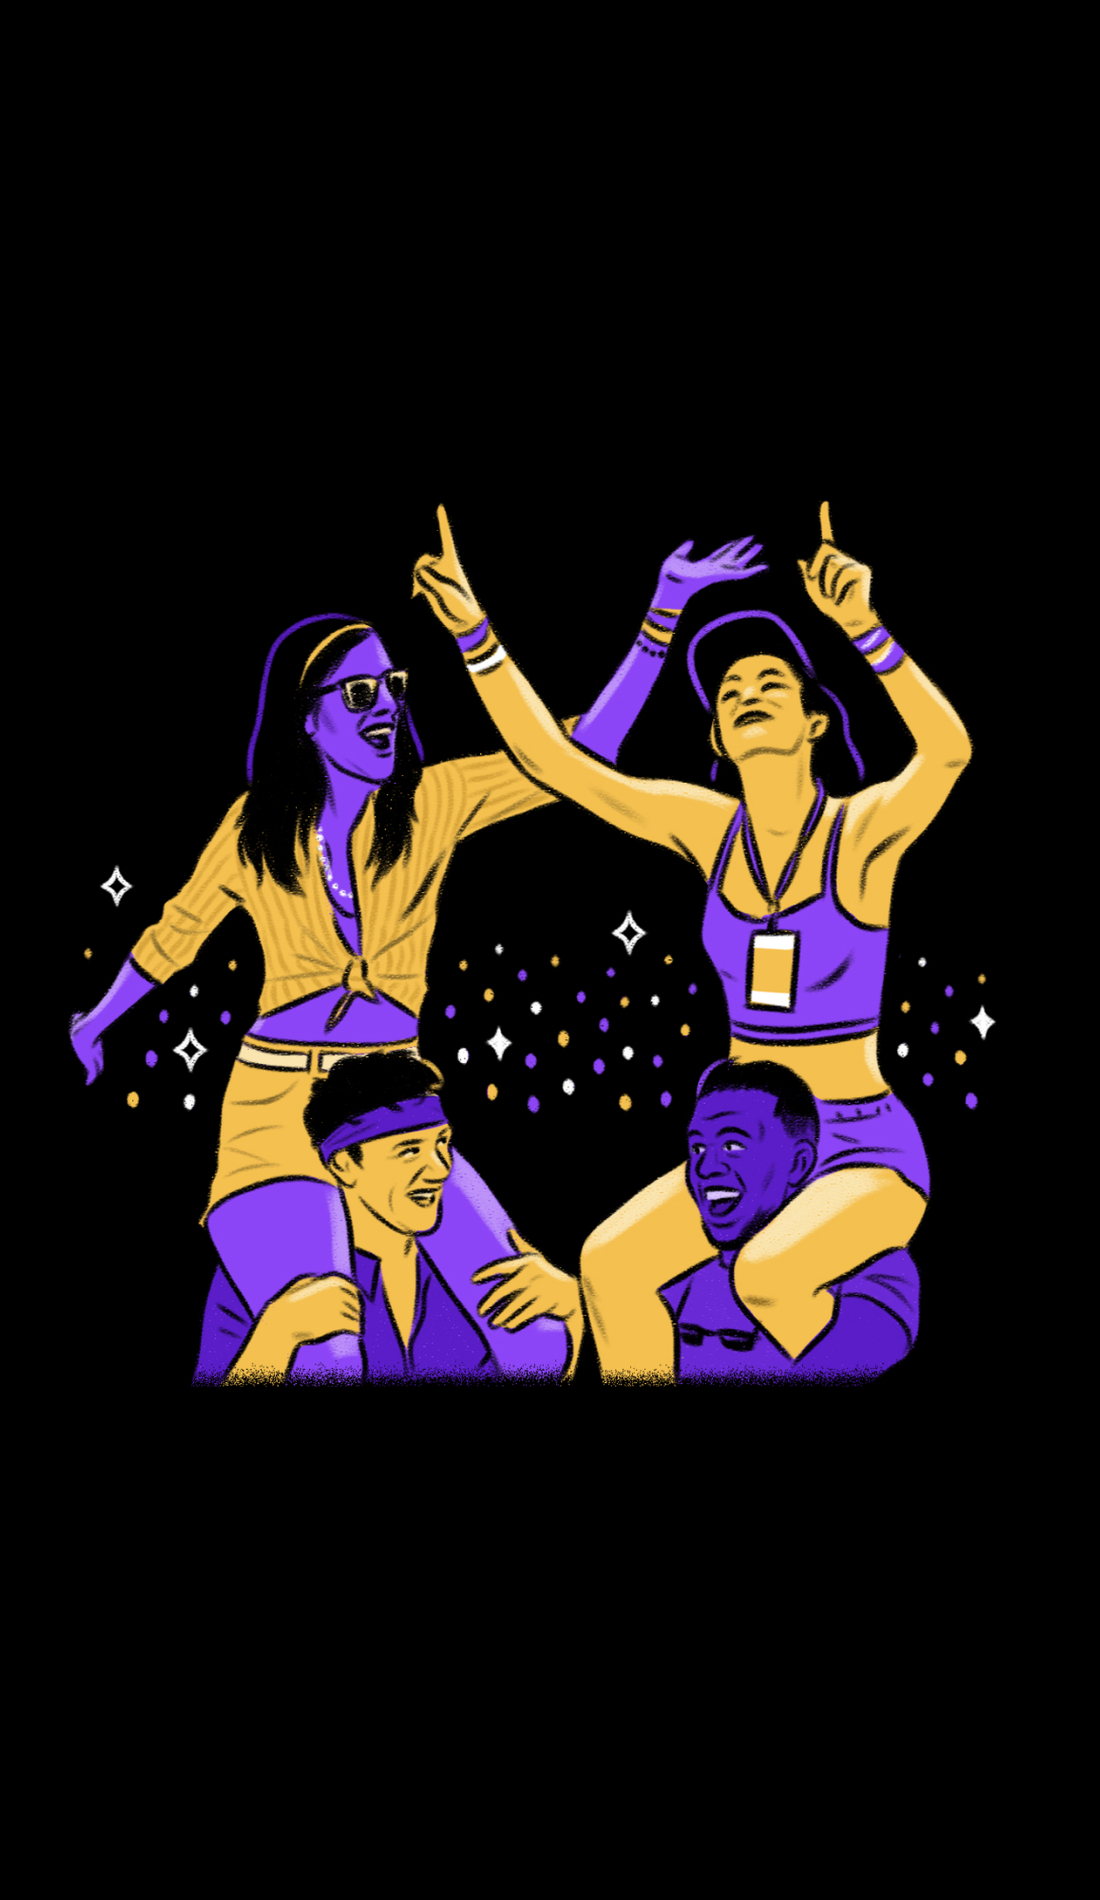 A Electric Forest live event